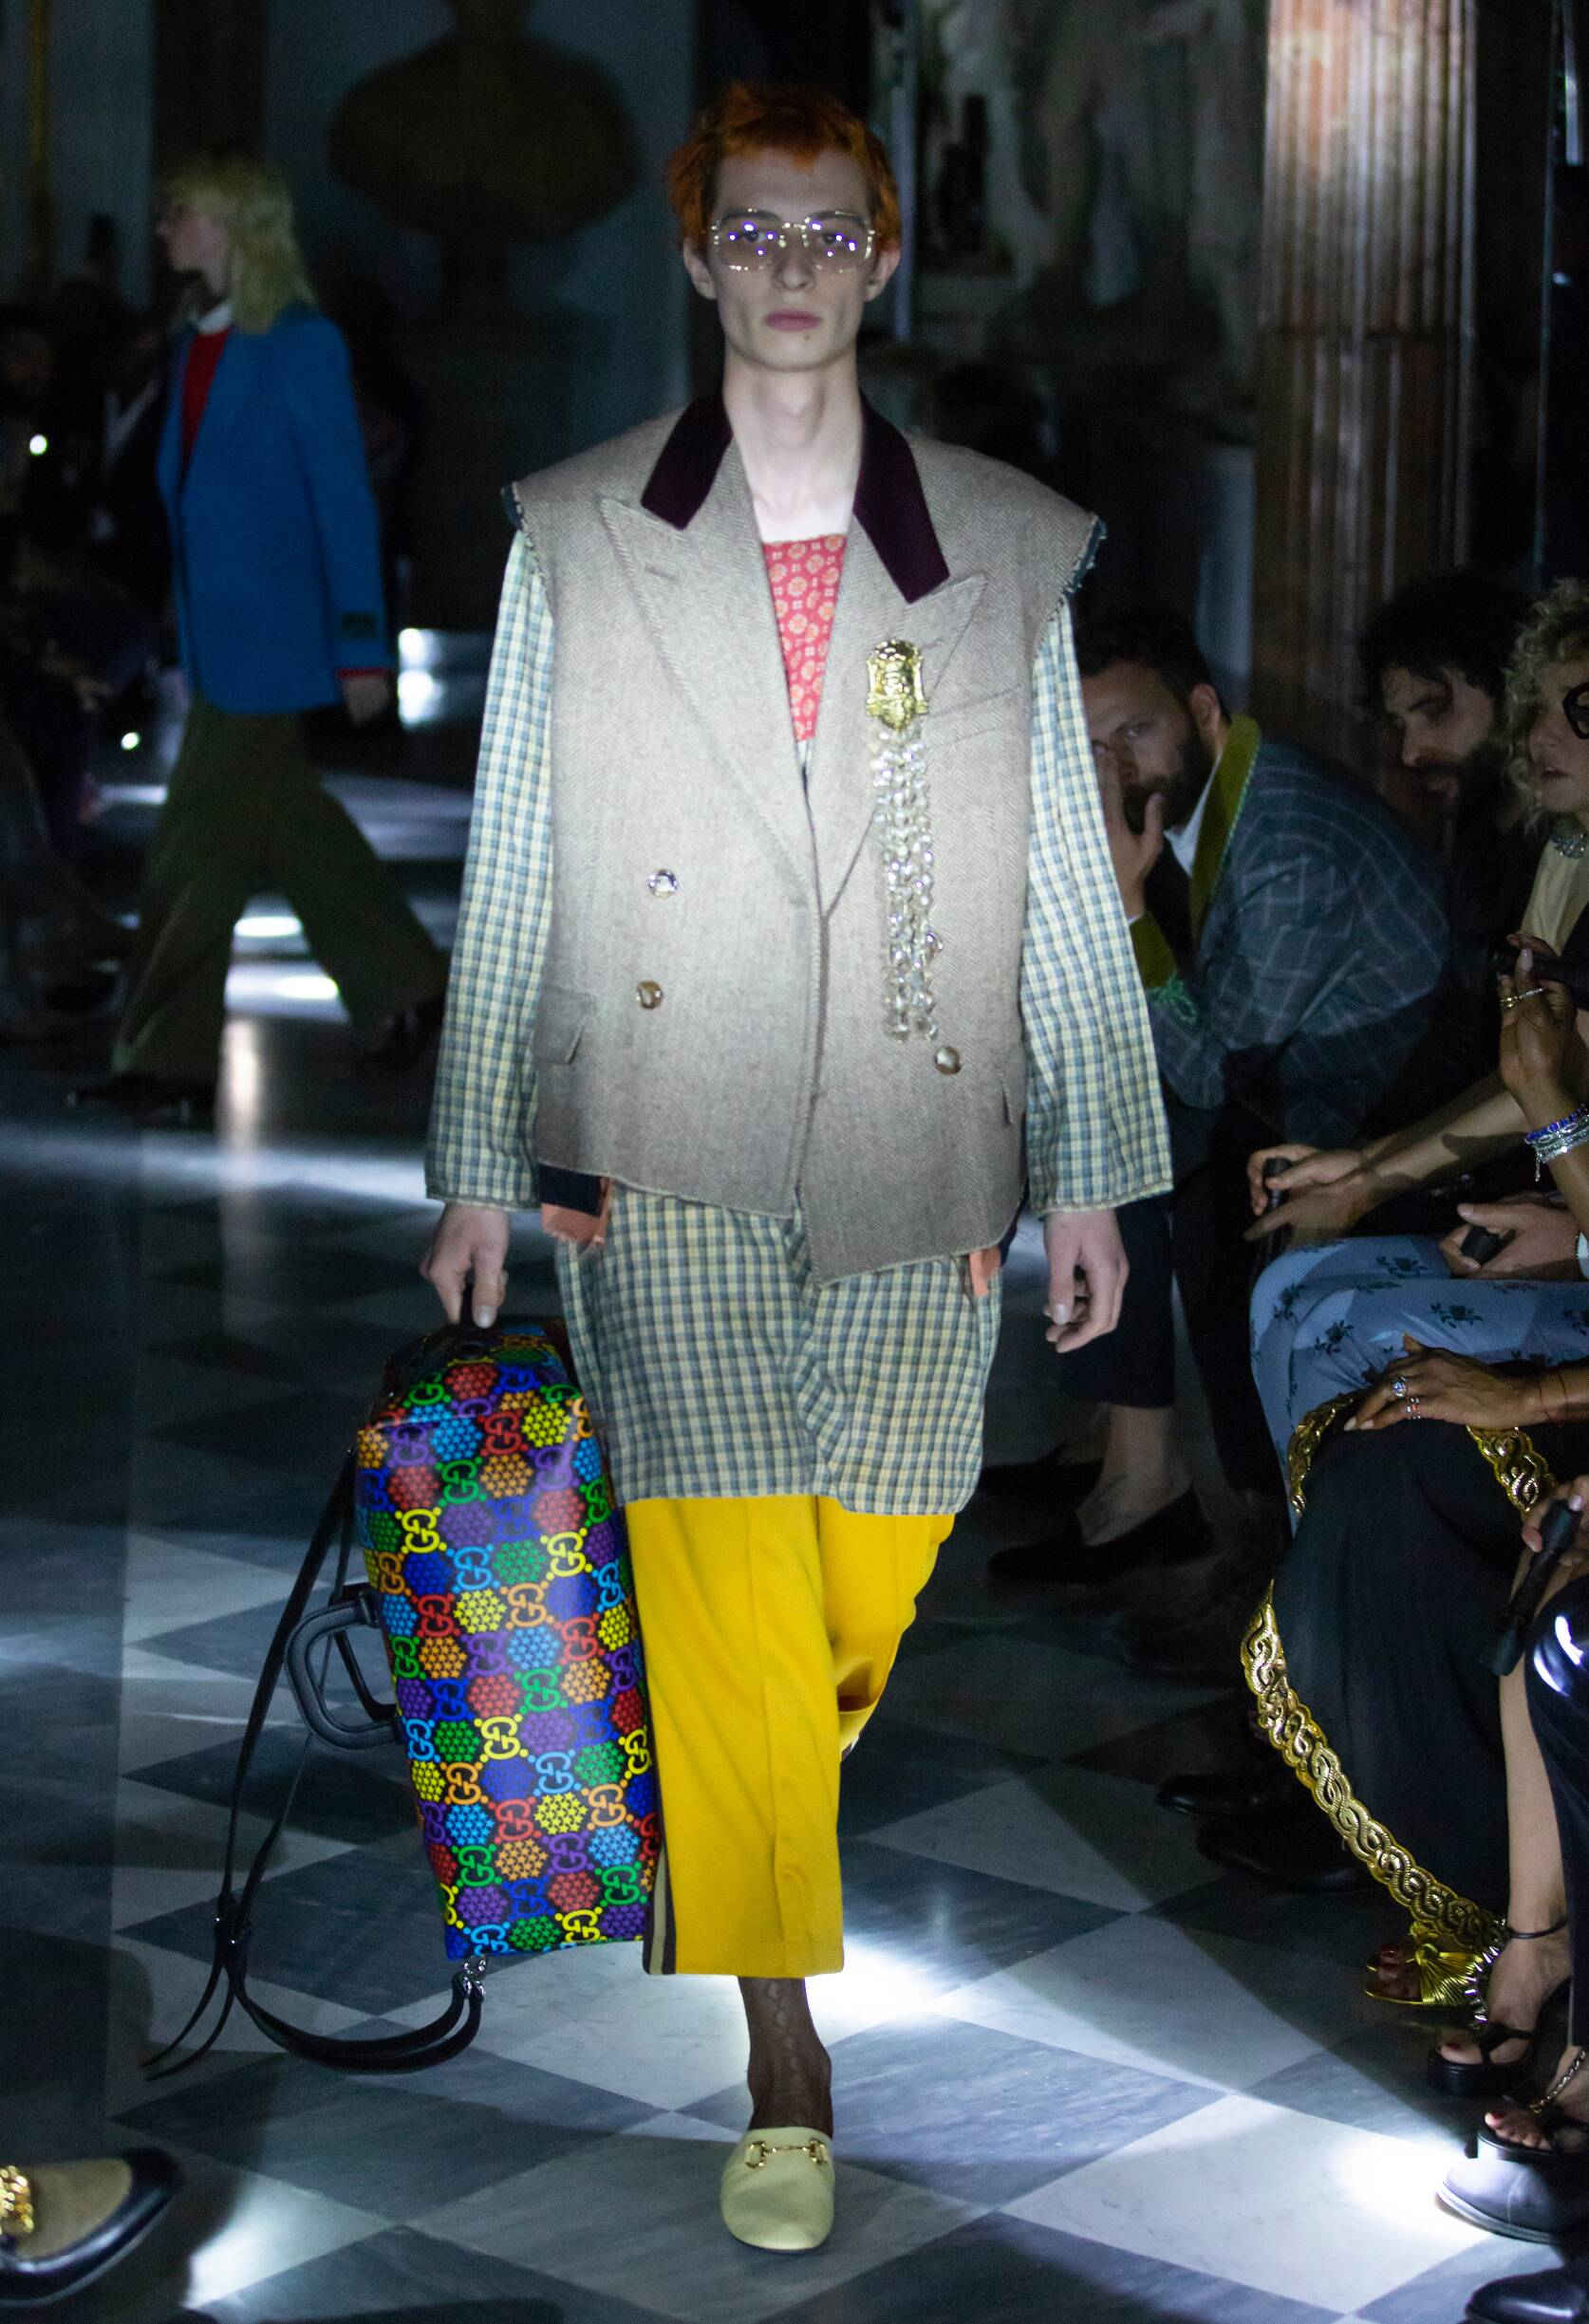 Gucci Cruise 2020 Collection Look 34 Rome